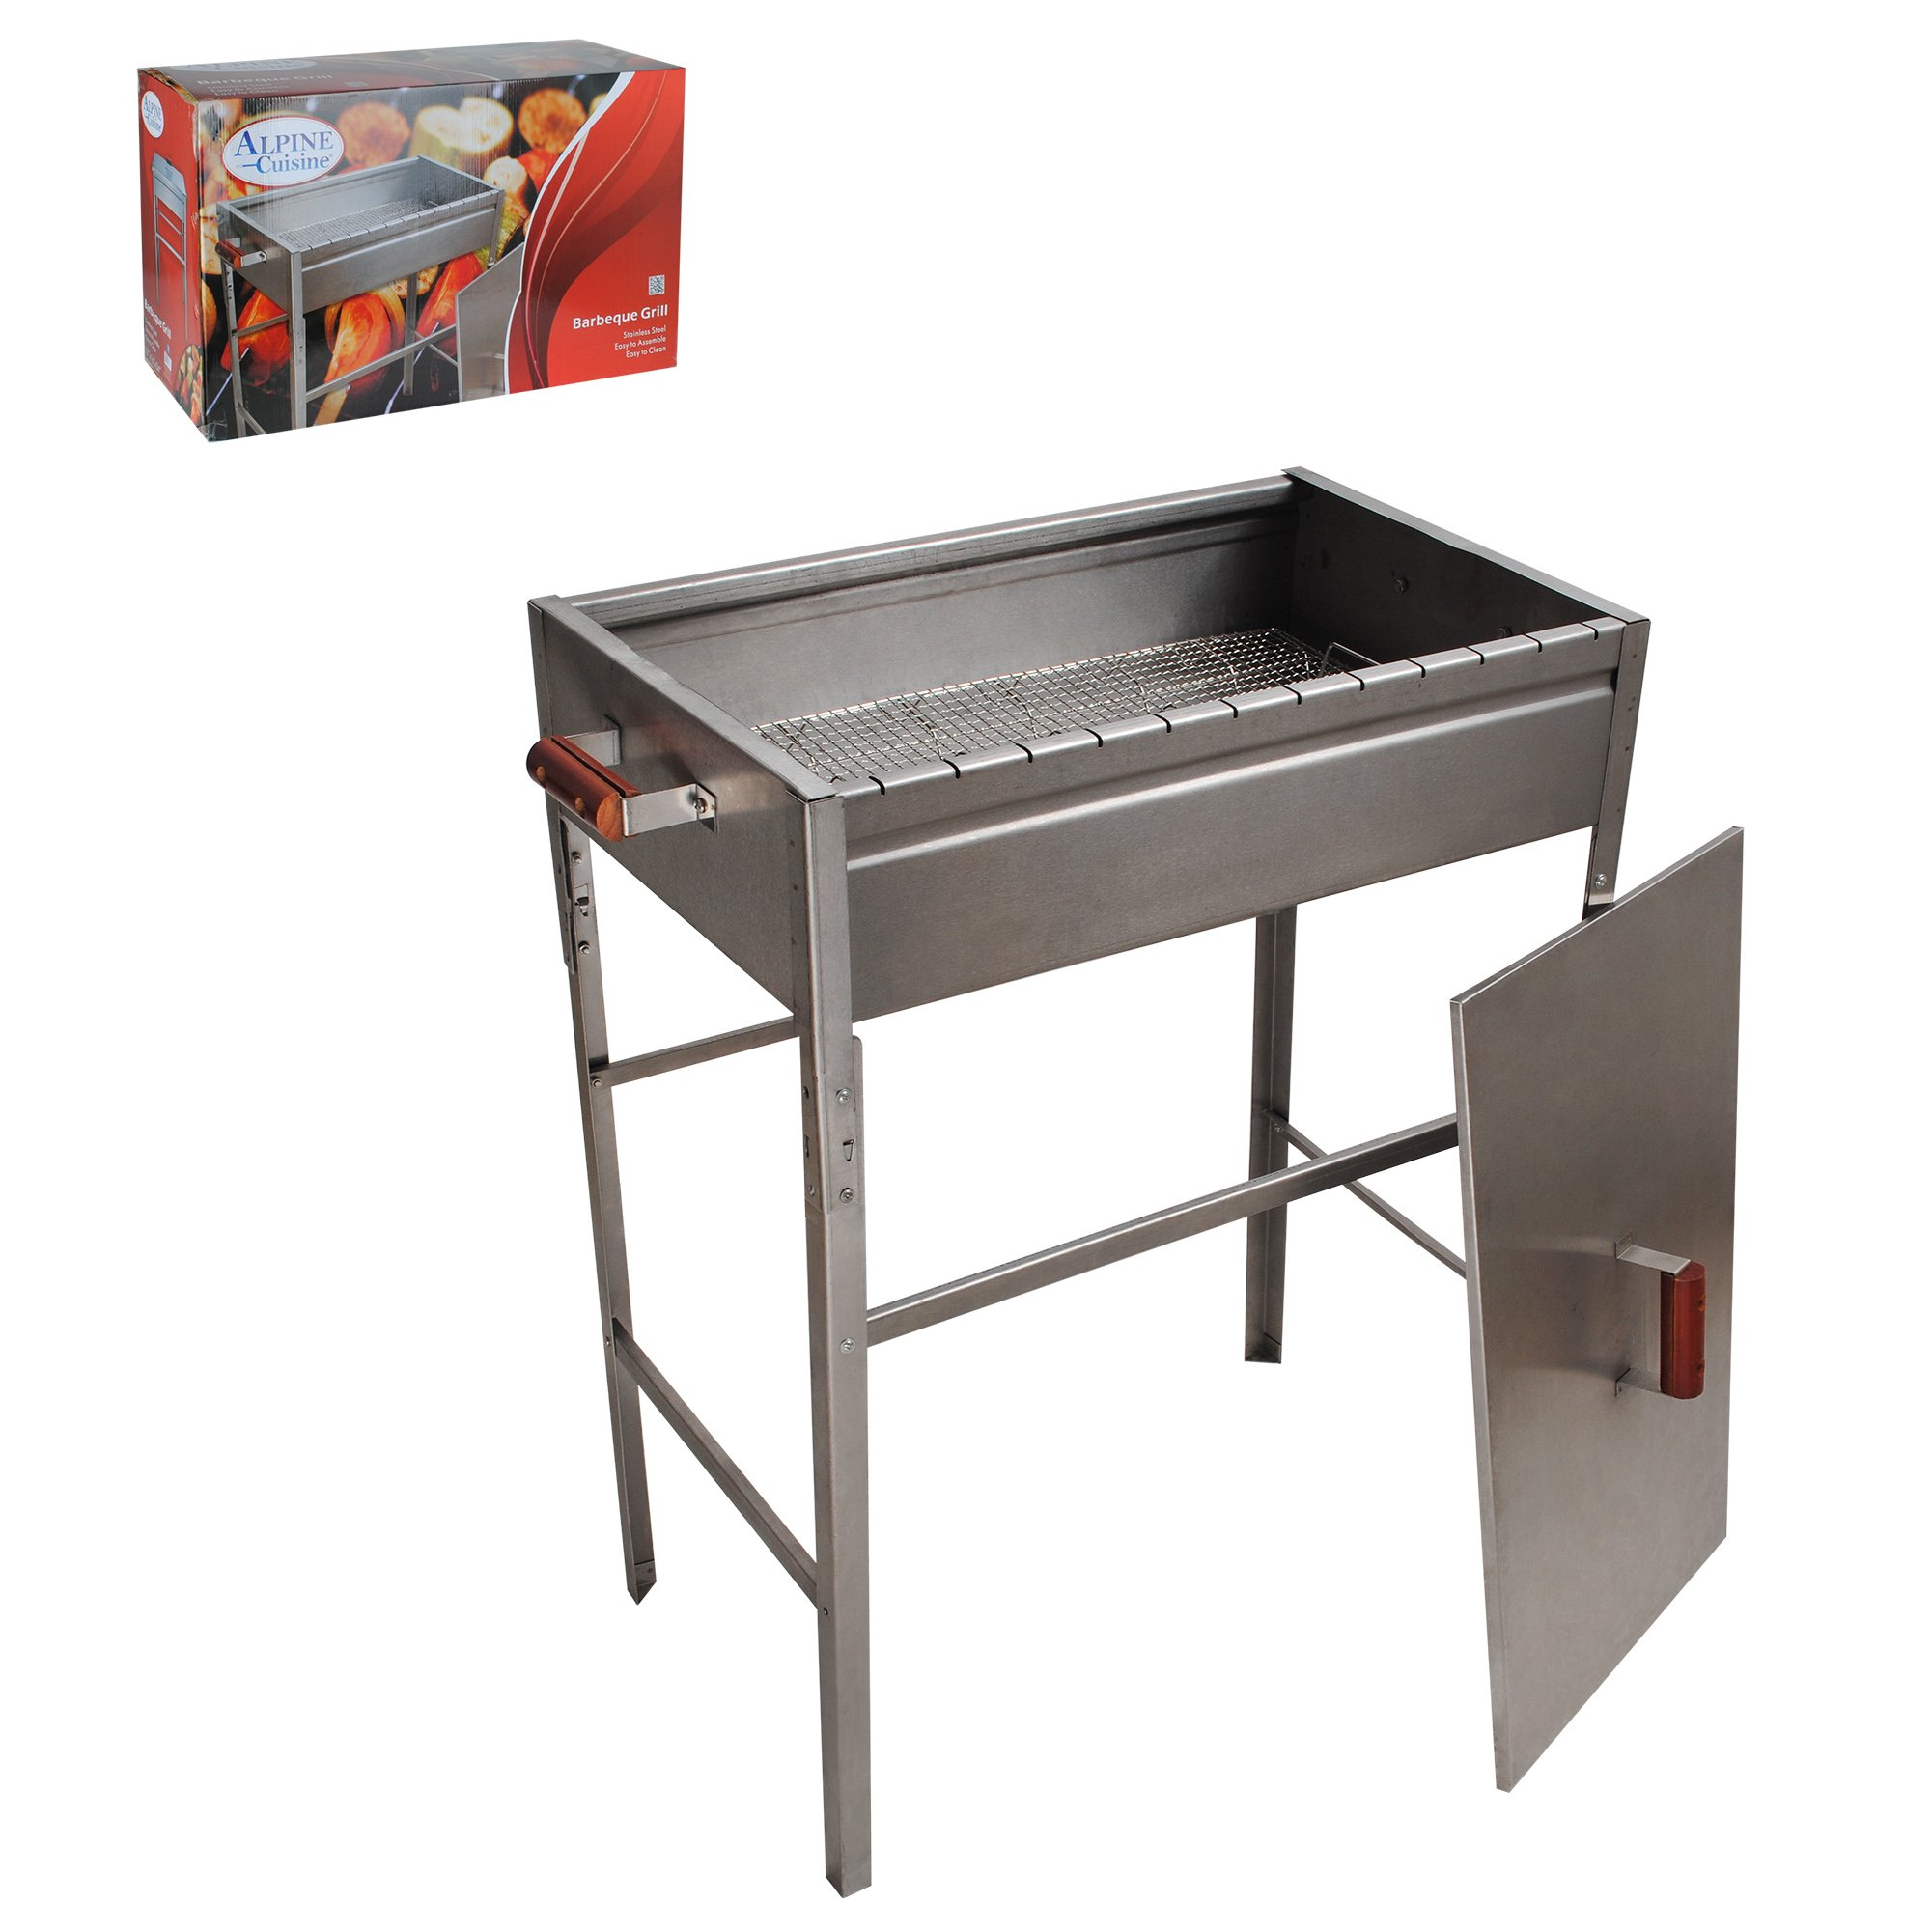 Aramco AI17373 BBQ Grill & Lid, Large, Stainless Steel